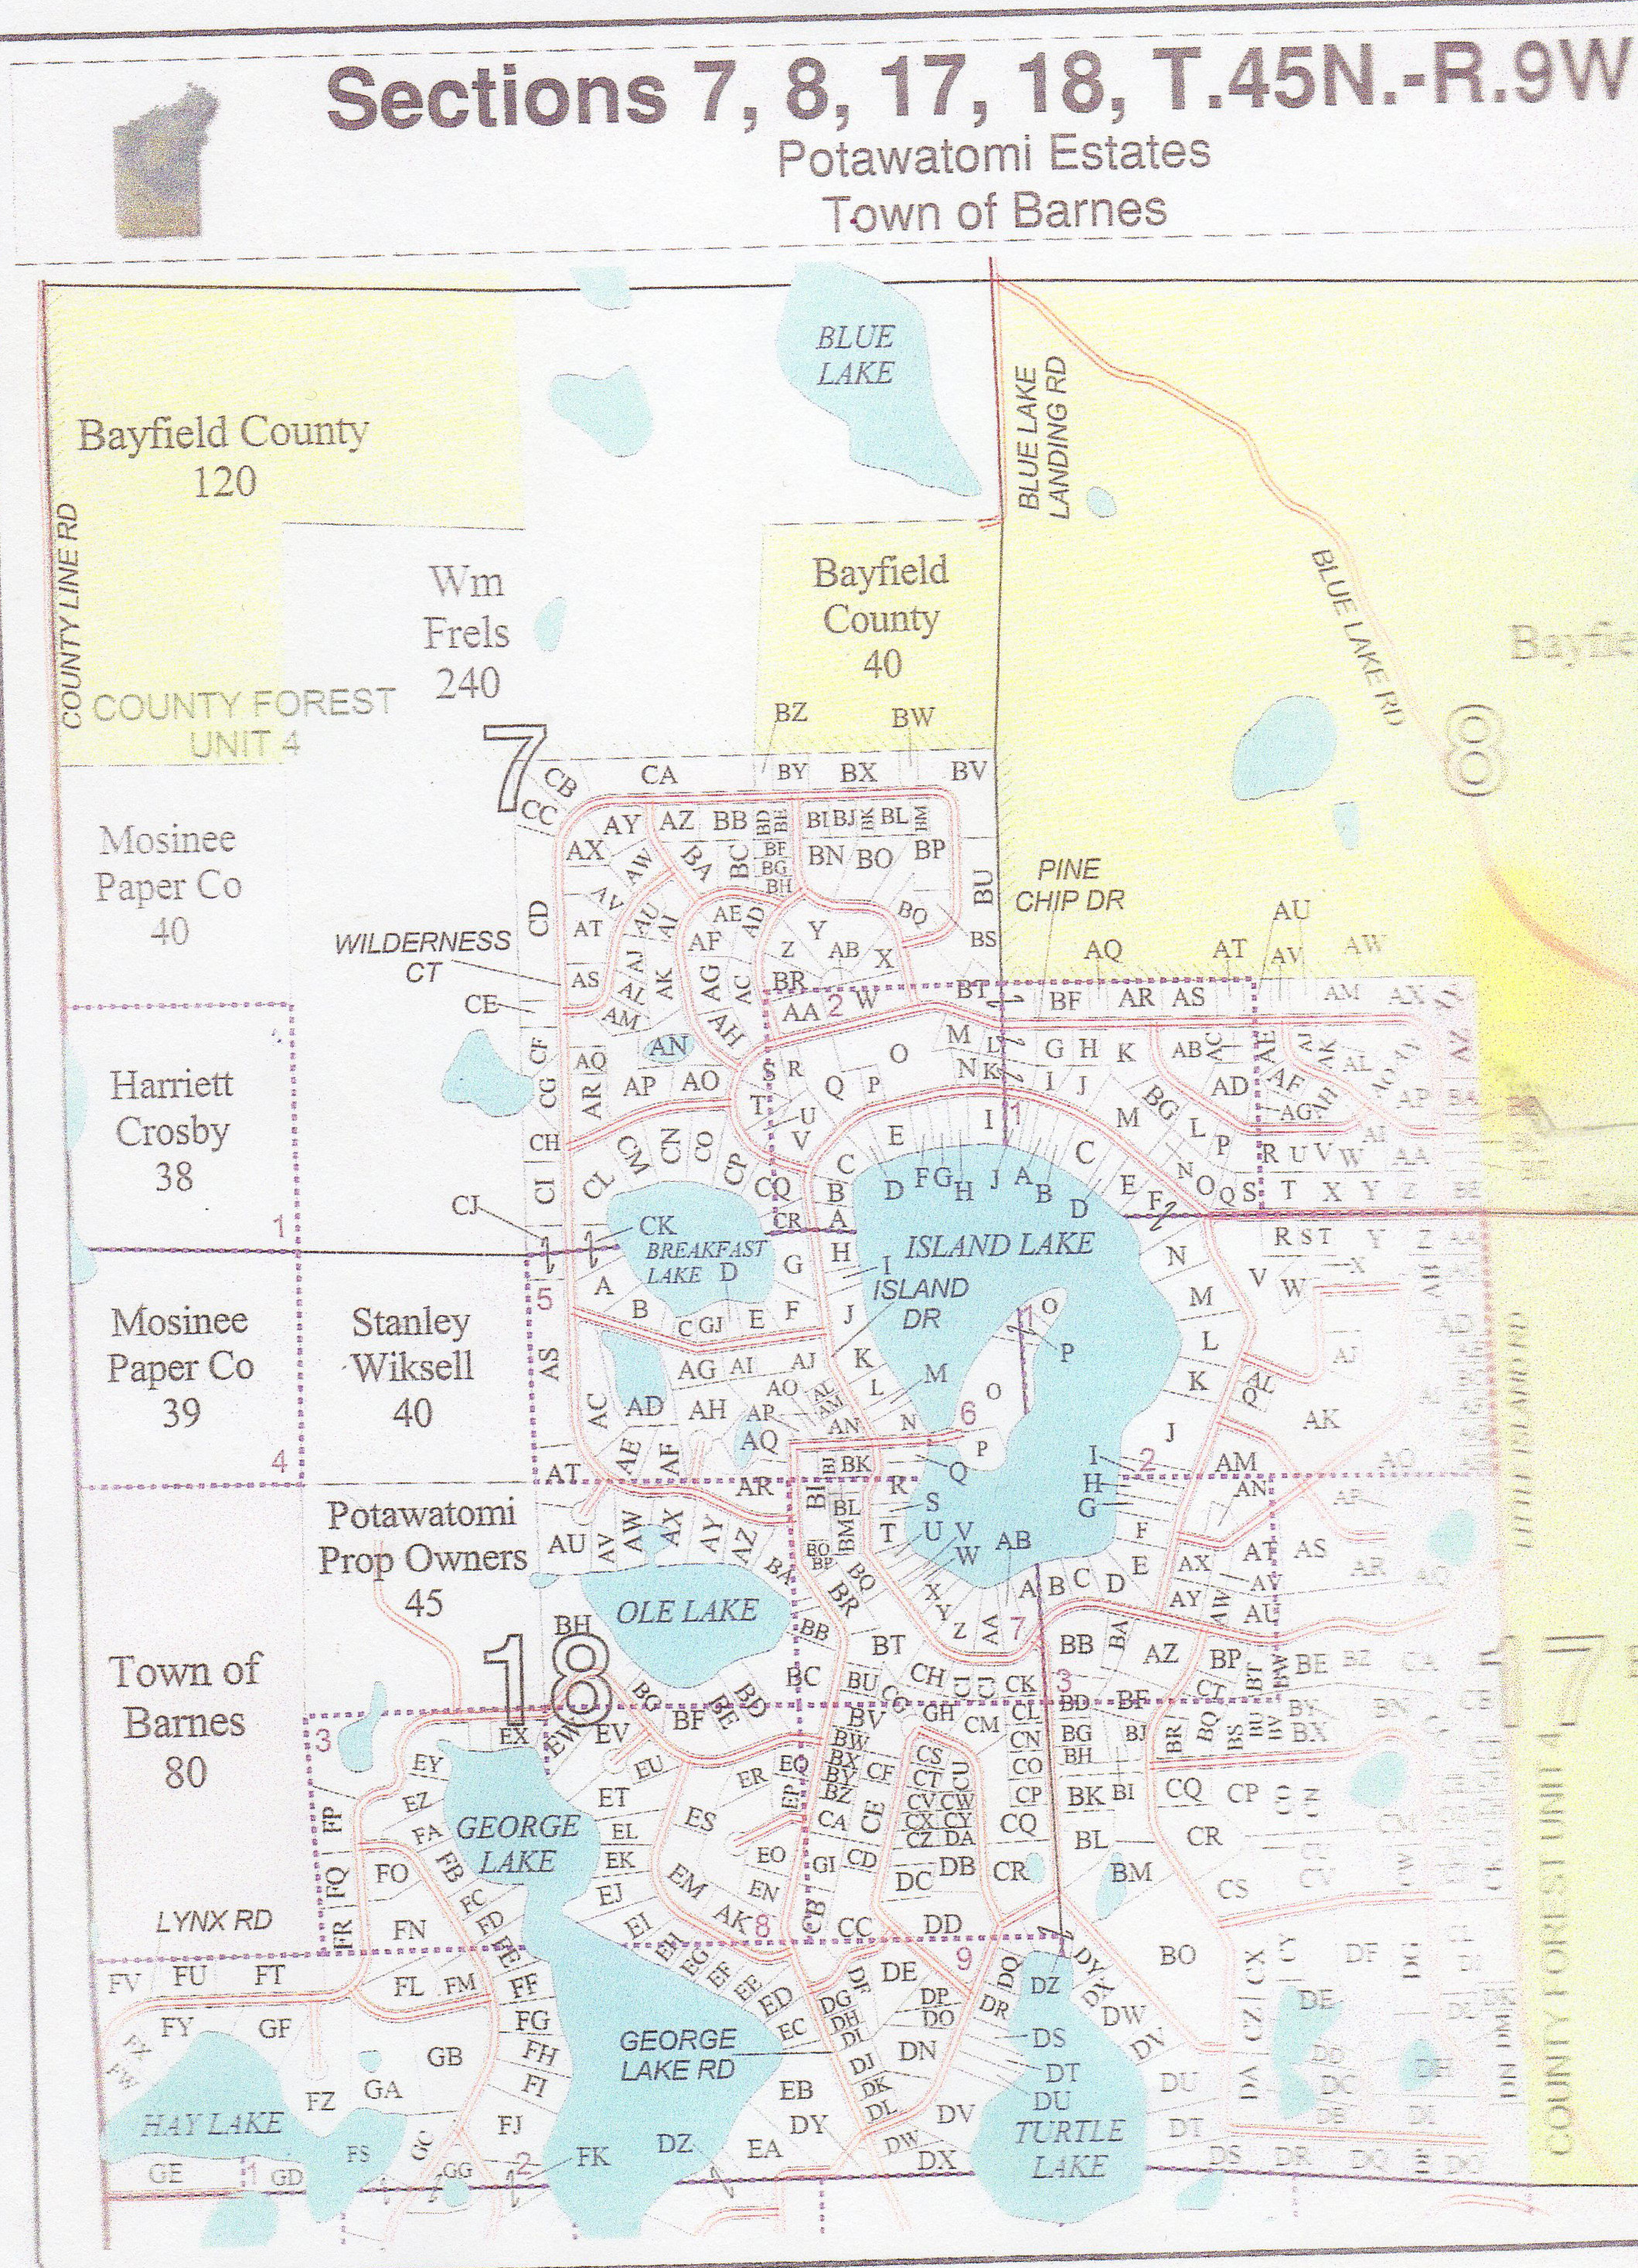 Potawatomi Estates Land Map 2